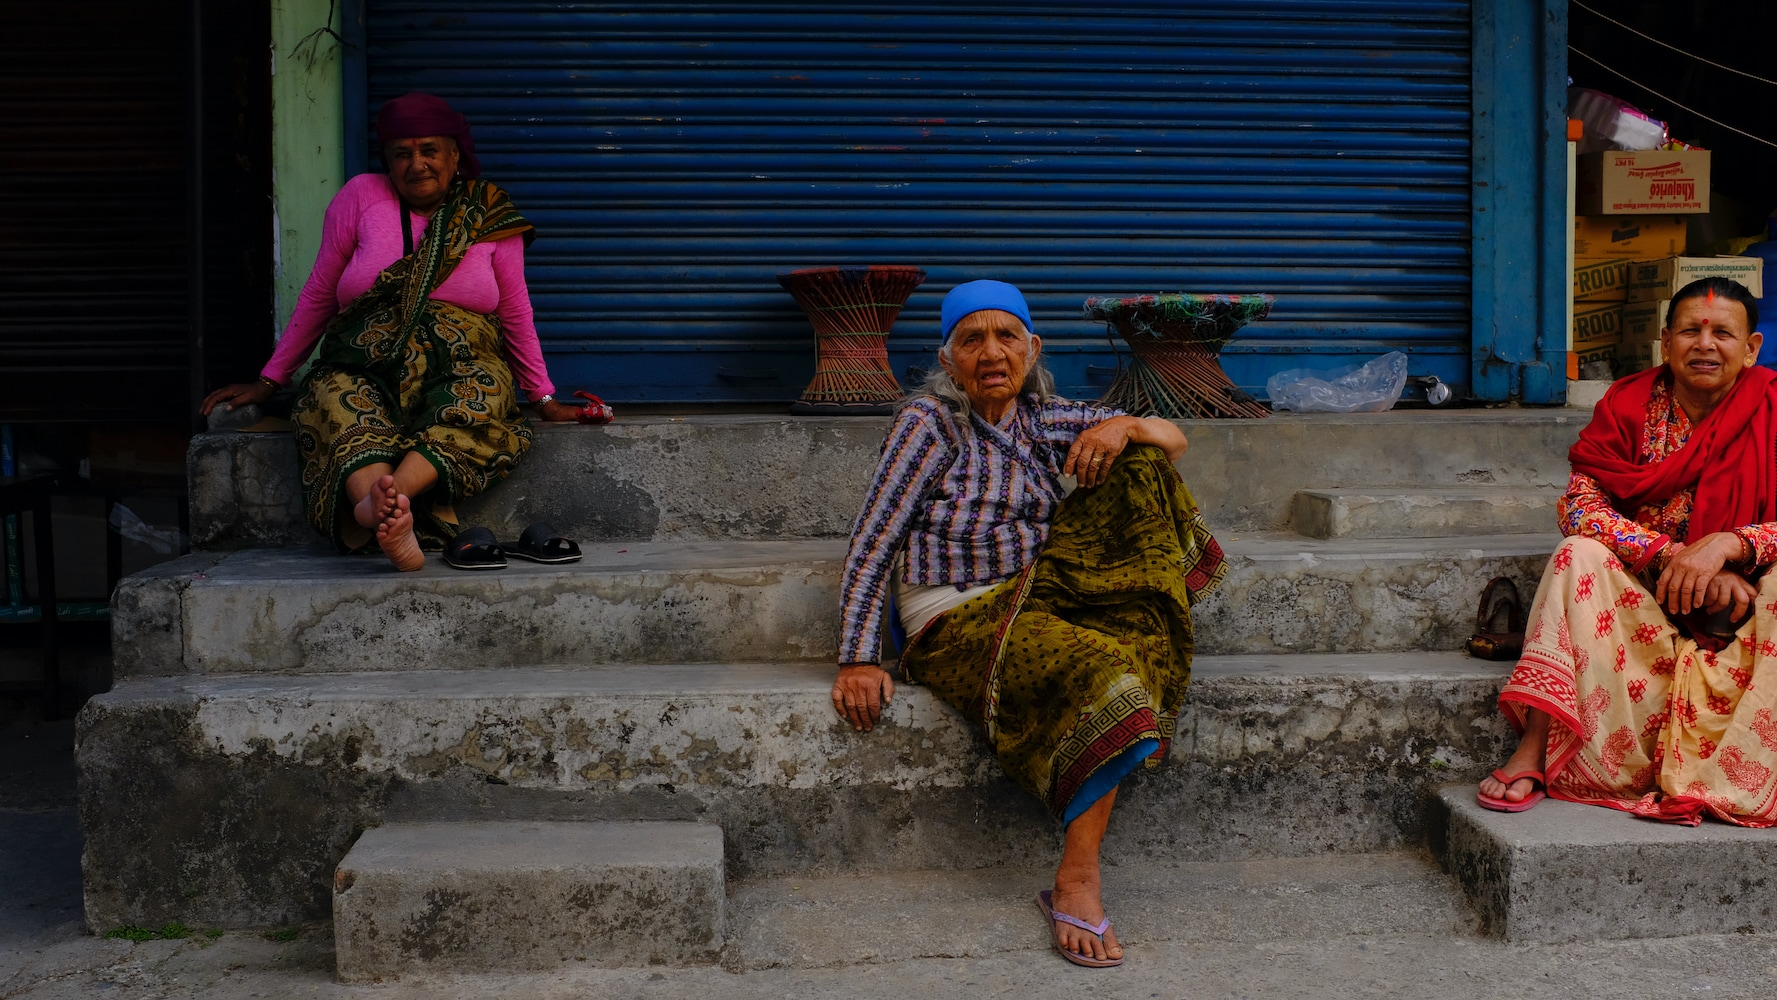 Aged women sitting outside a closed shop in Pokhara